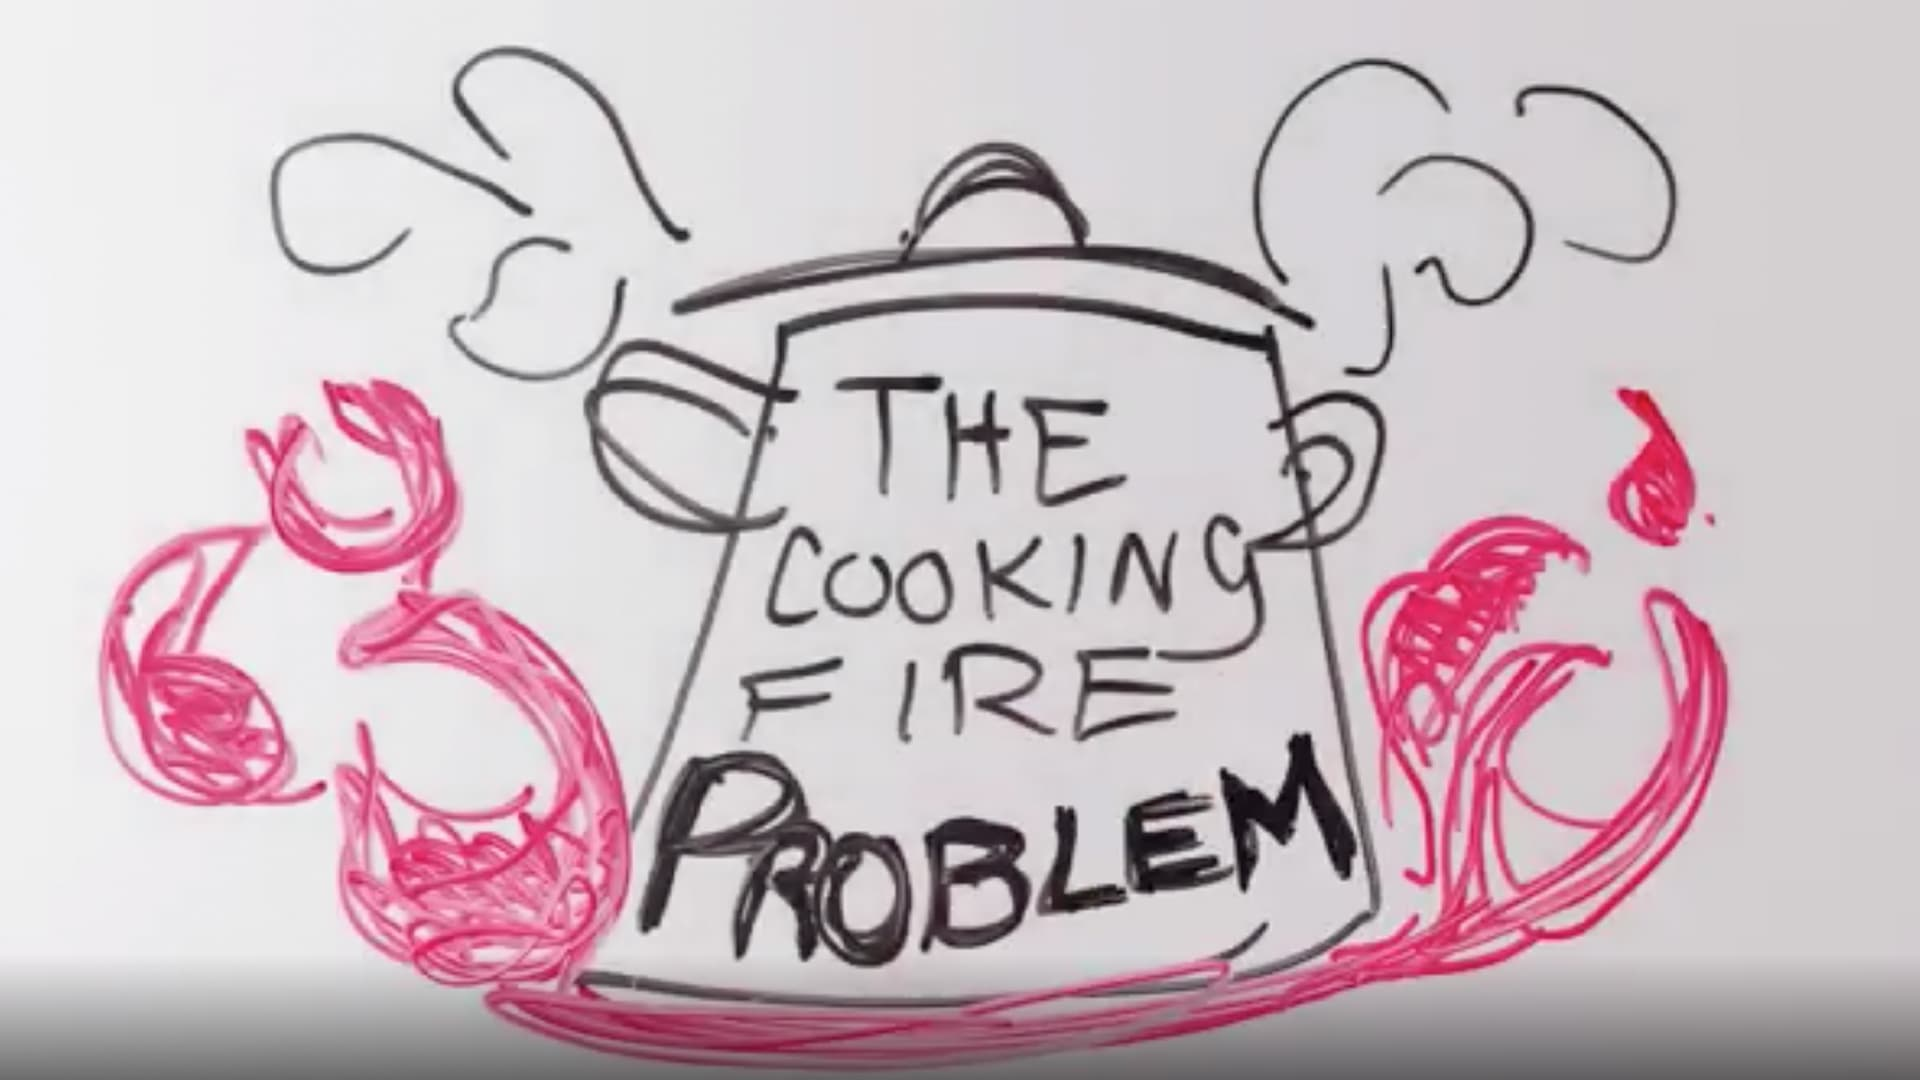 The Cooking Fire Problem